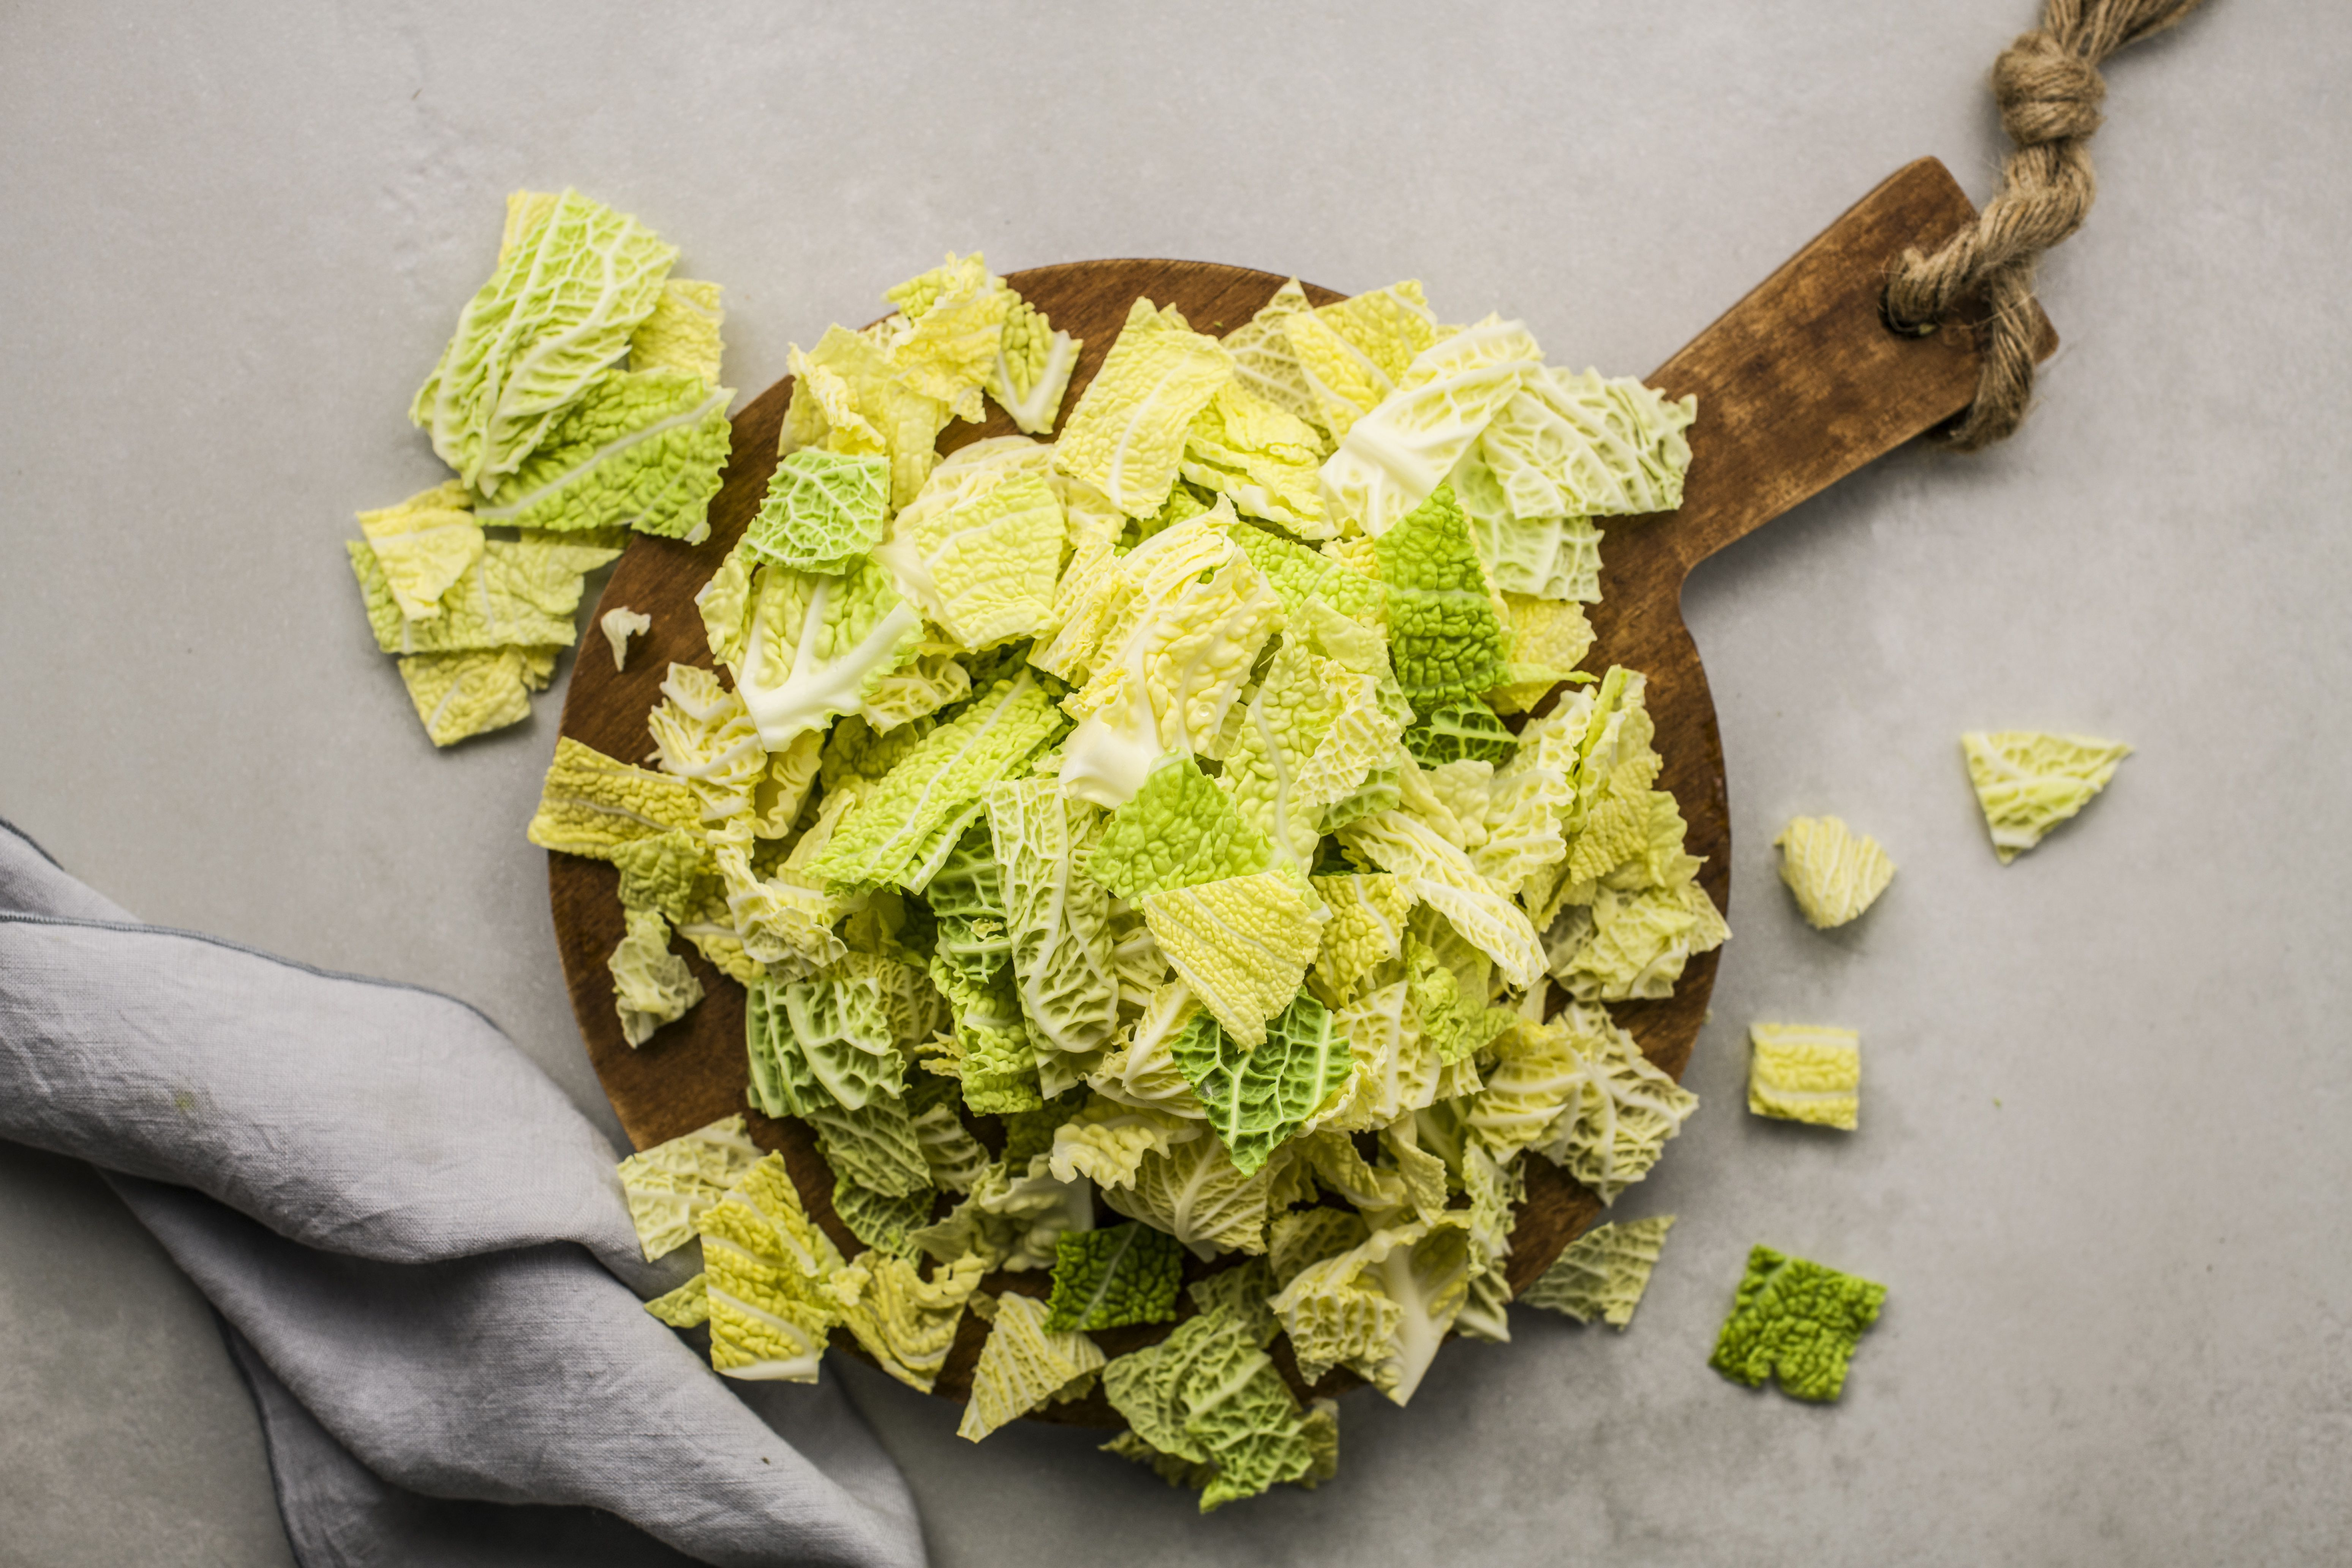 Chop cabbage into bite-sized pieces